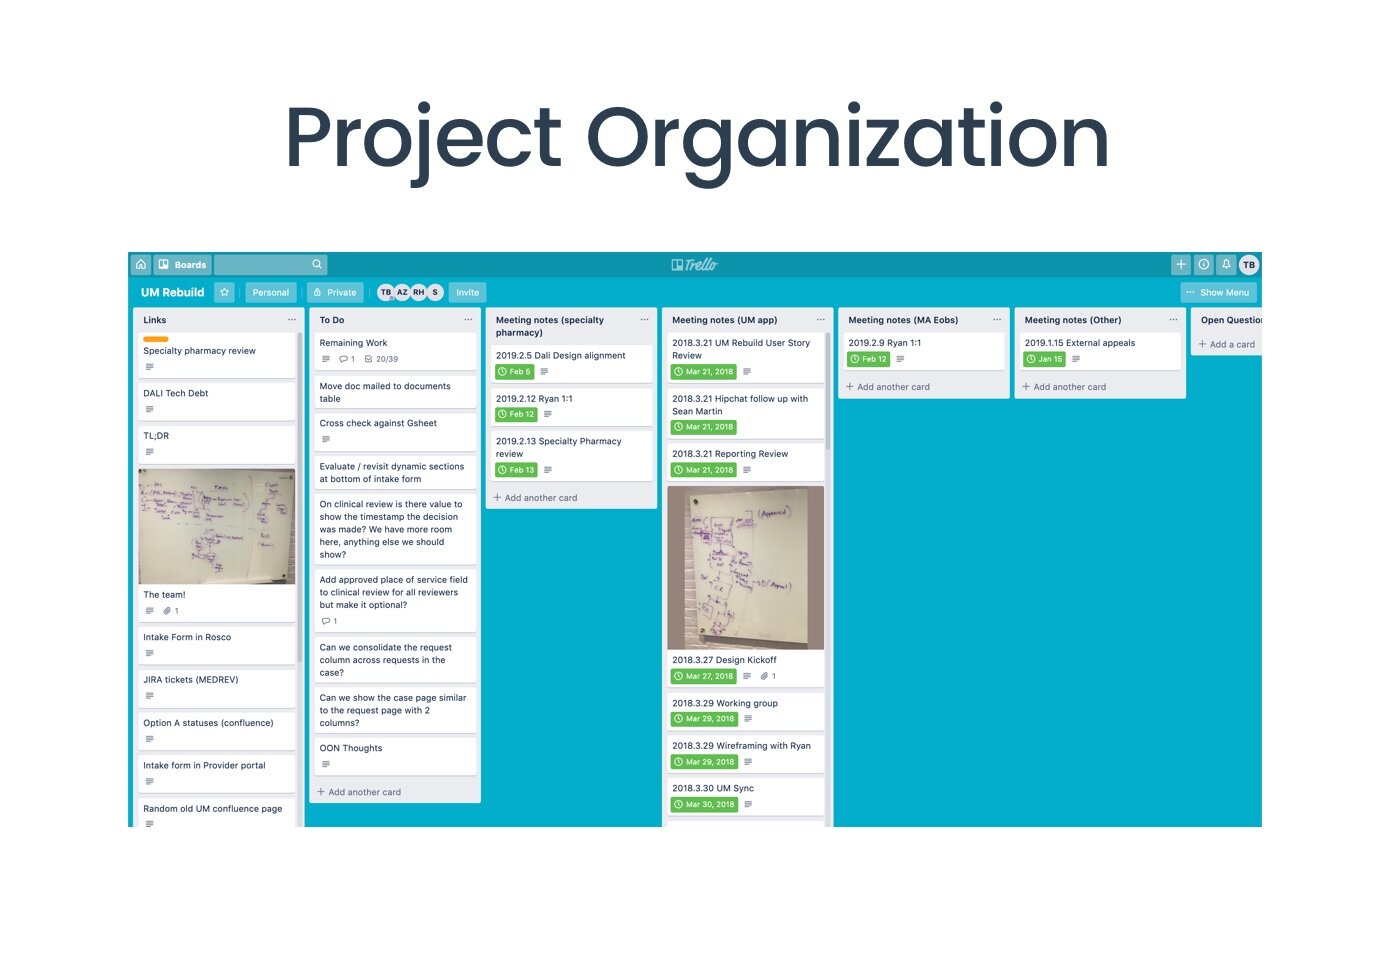 I kept track of all meeting notes, reference materials, key decisions, and open questions in a Trello board throughout the project.